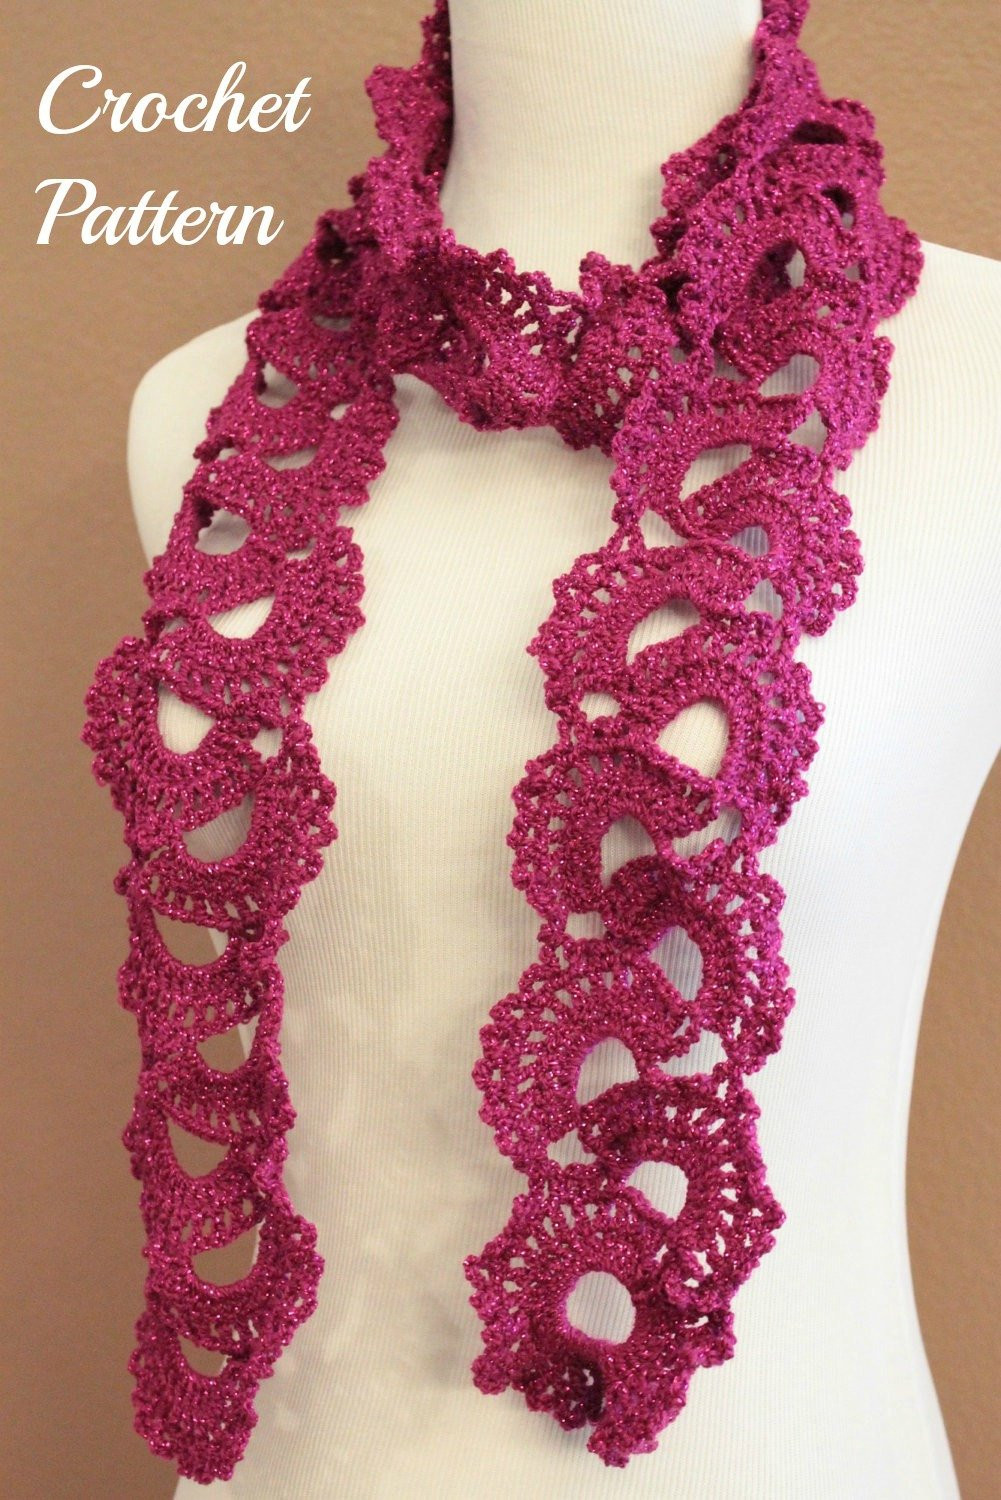 Crochet Lace Pattern Easy